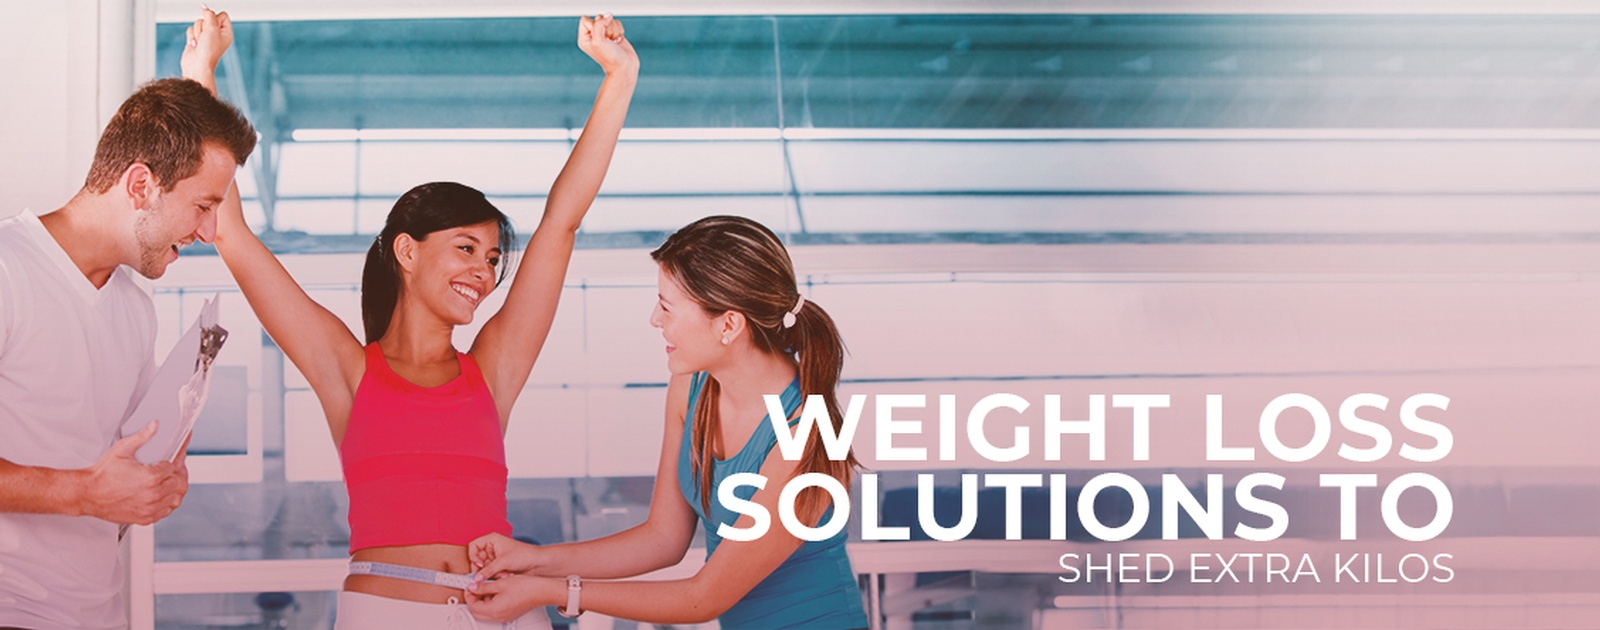 Weight loss solutions to shed extra kilos